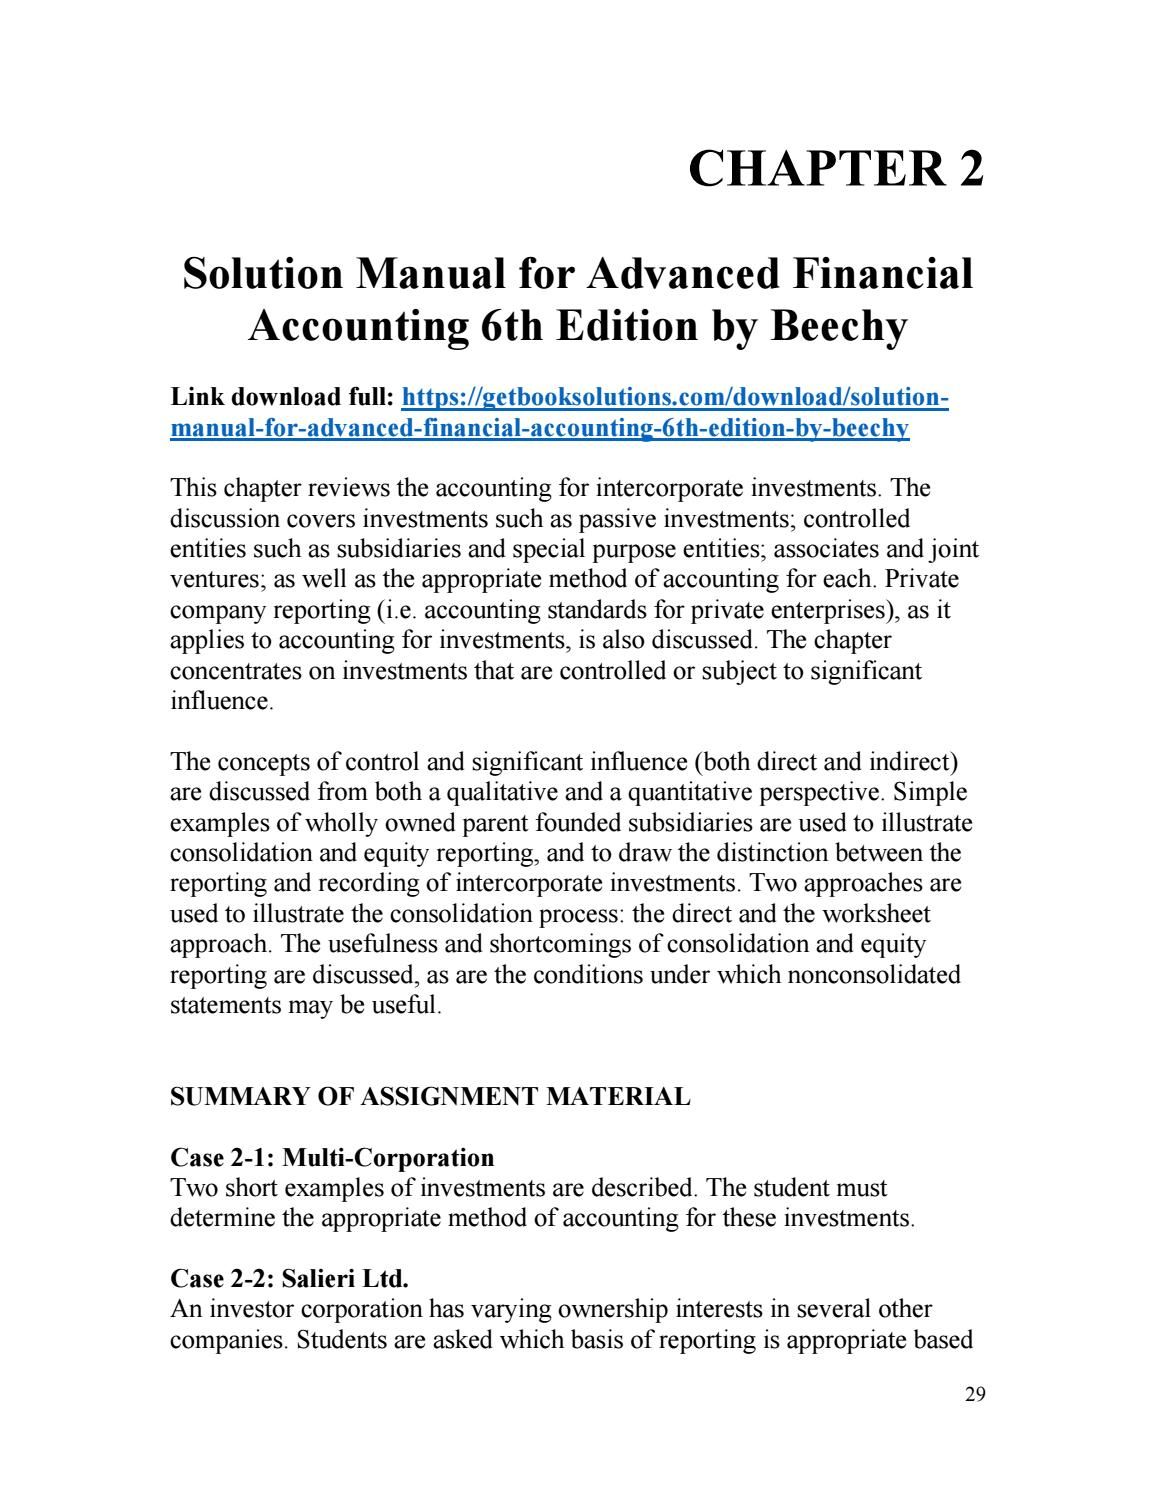 Download solution manual for advanced financial accounting 6th edition by  beechy